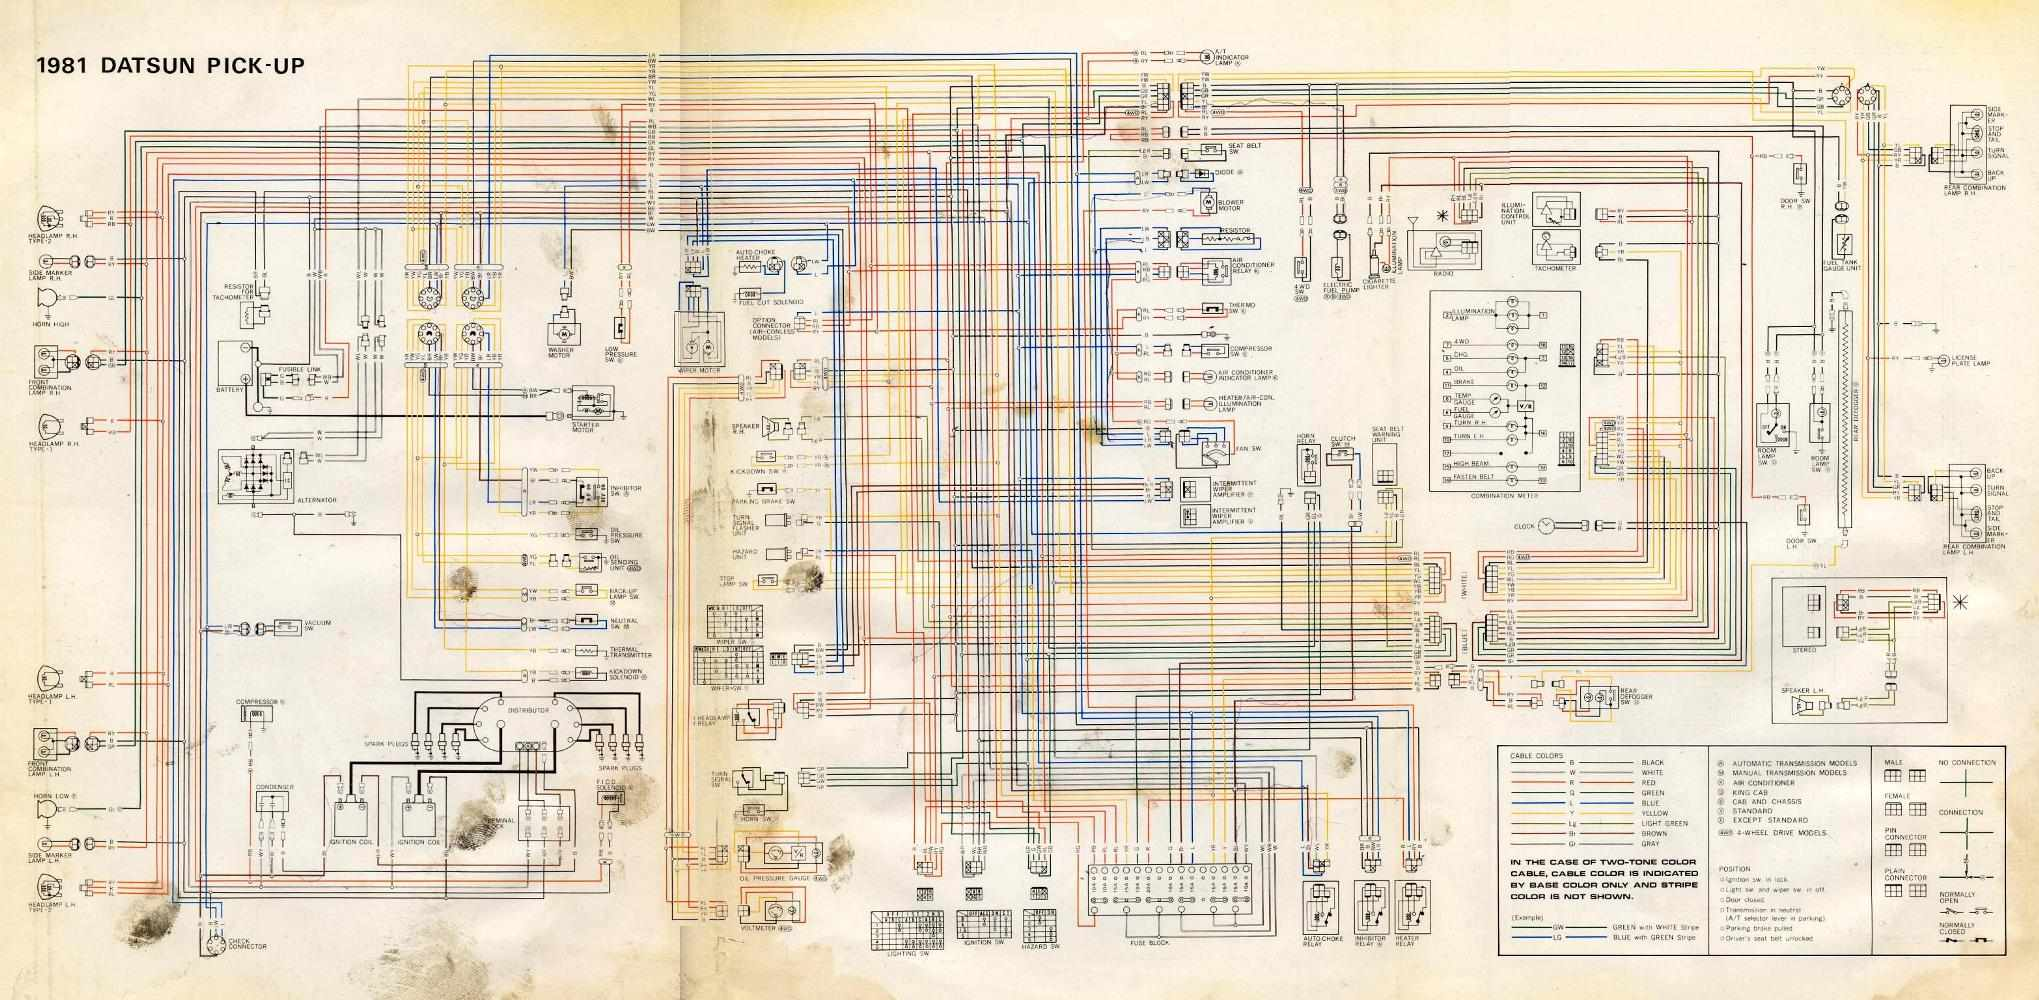 bluebird alternator wiring schematics simple wiring schema simplicity wiring schematic bluebird alternator wiring schematics [ 2039 x 1000 Pixel ]